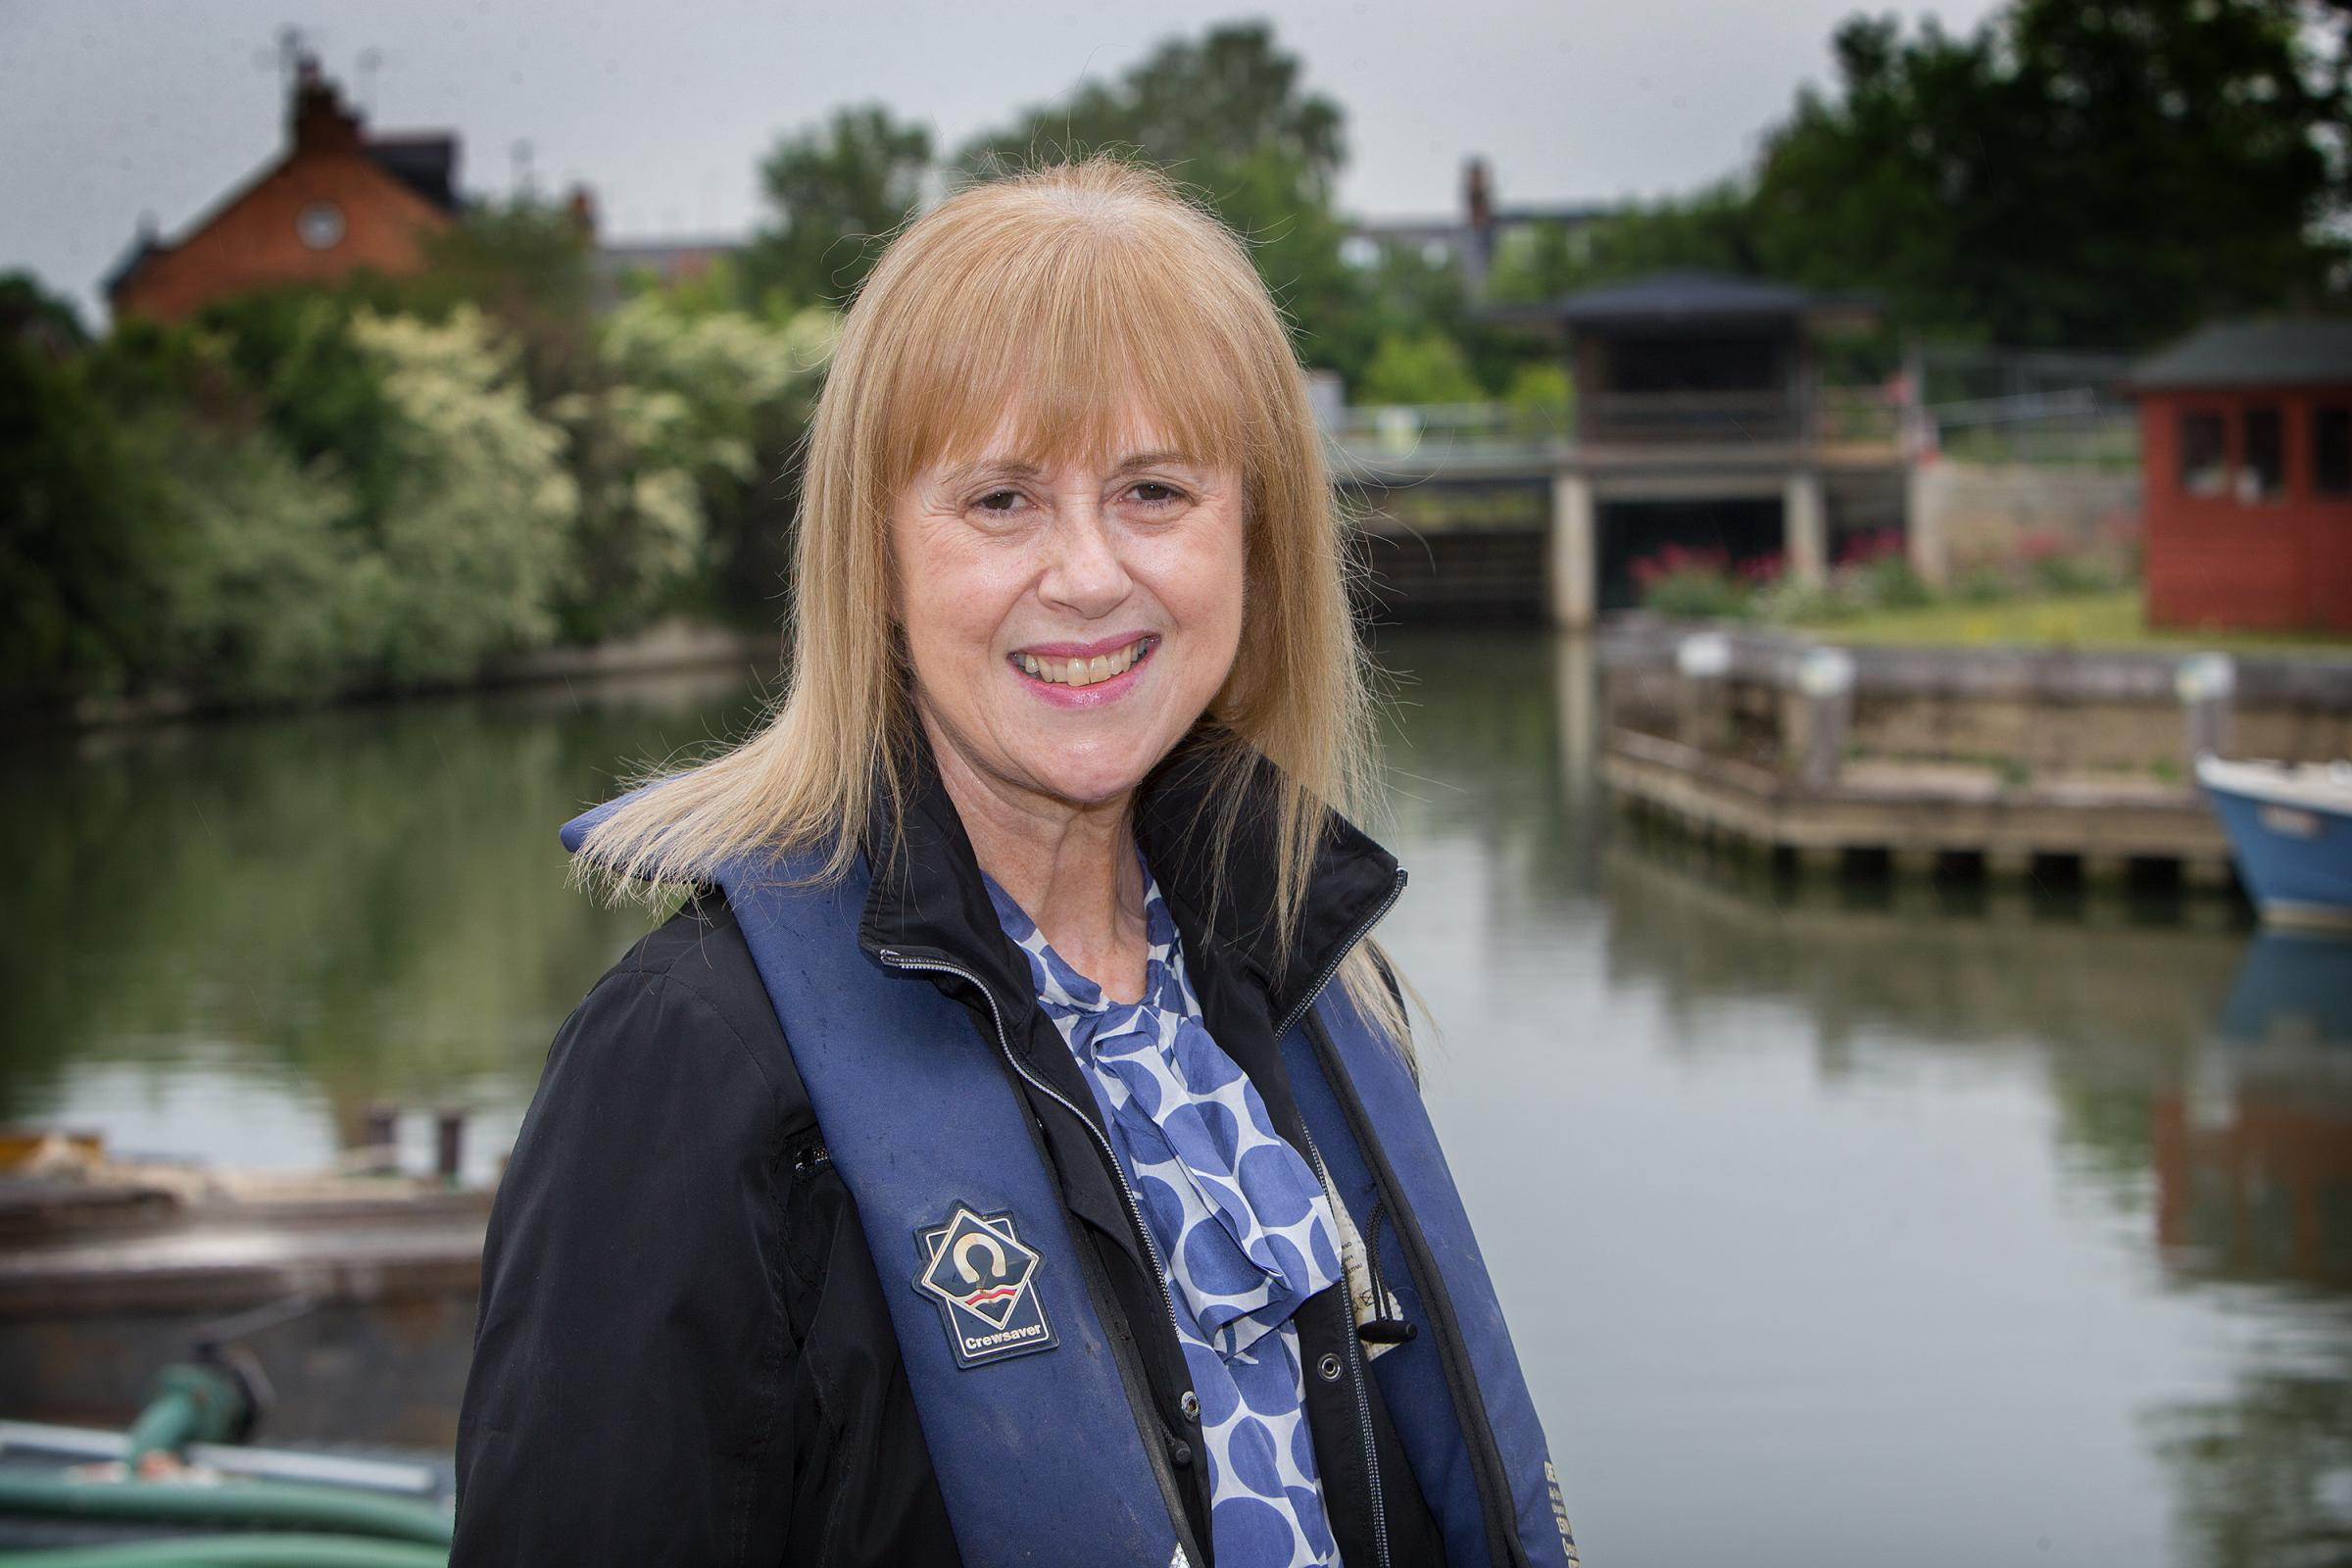 Humbled: Julia Simpson, the Environment Agency's West Thames area manager, has been awarded an MBE